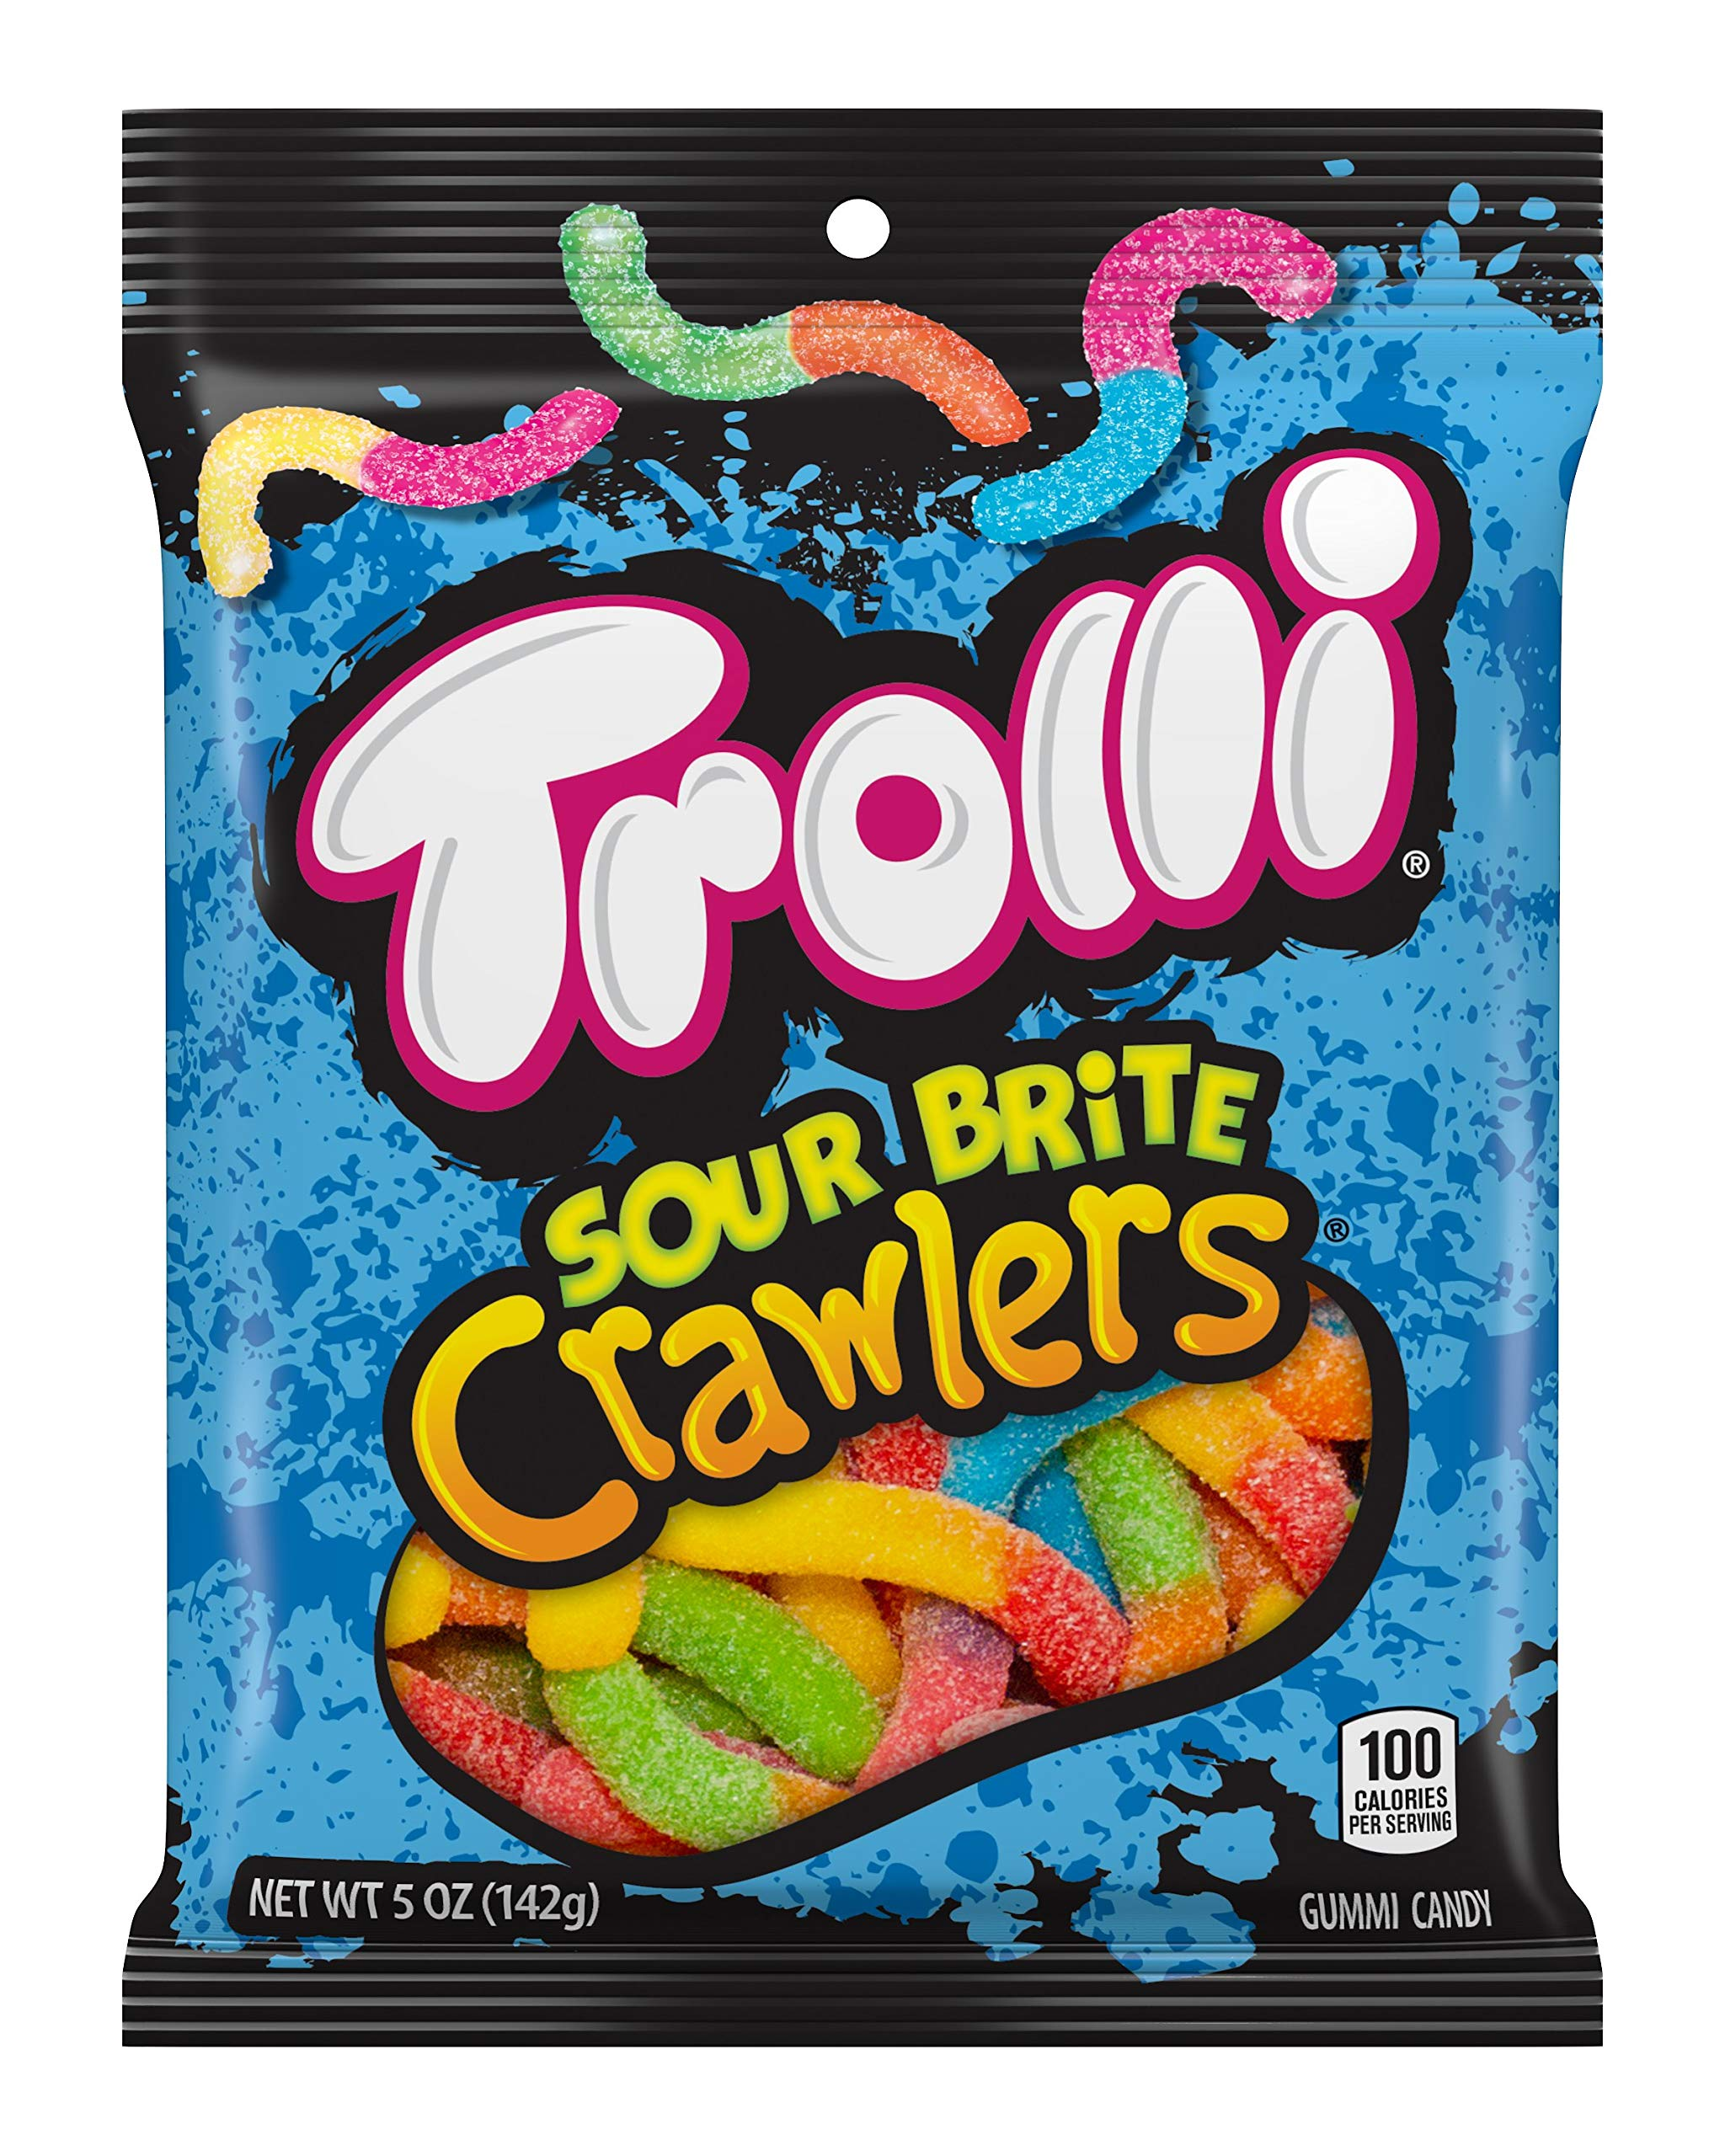 Trolli Sour Brite Crawlers Gummy Candy, 5 Ounce Bag, Pack of 12 by Trolli